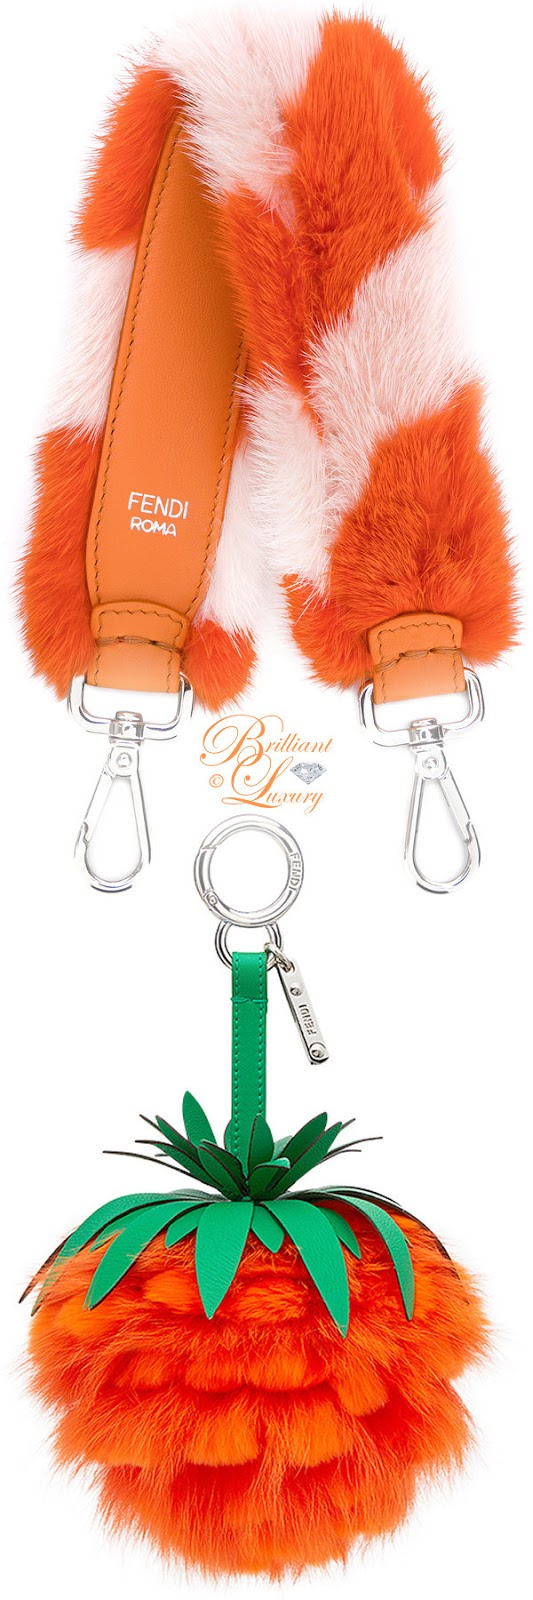 Brilliant Luxury ♦ Fendi strap you strap bag and fruit bag charm #orange